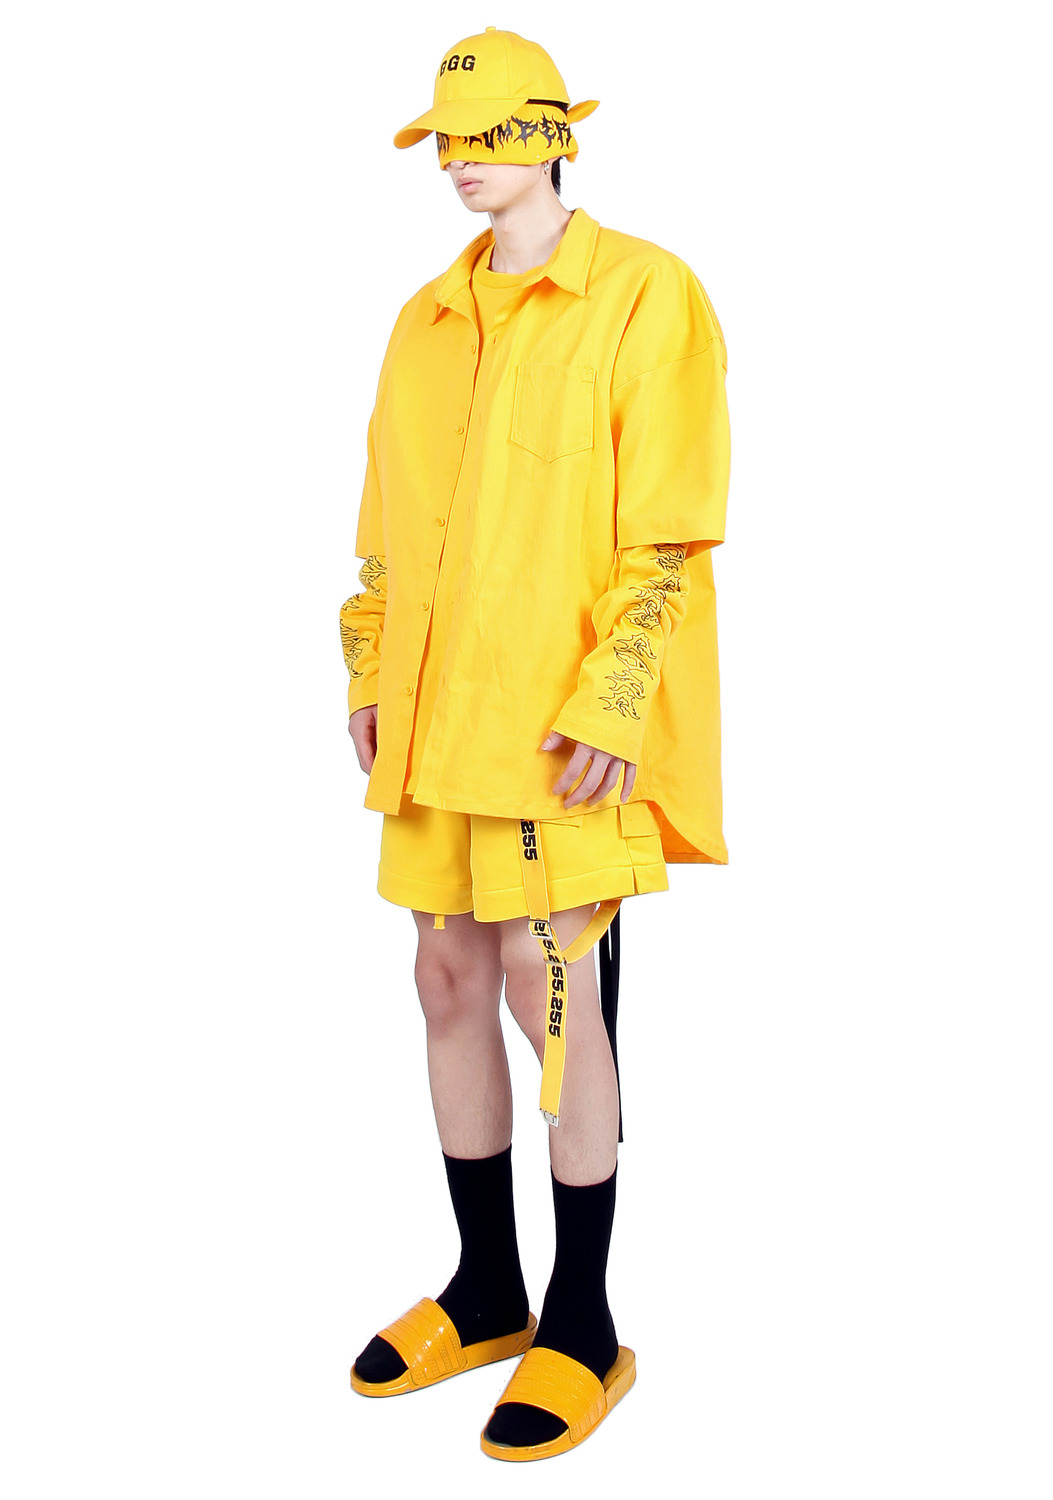 YELLOW SHORT SLEEVE OUTER SHIRTS